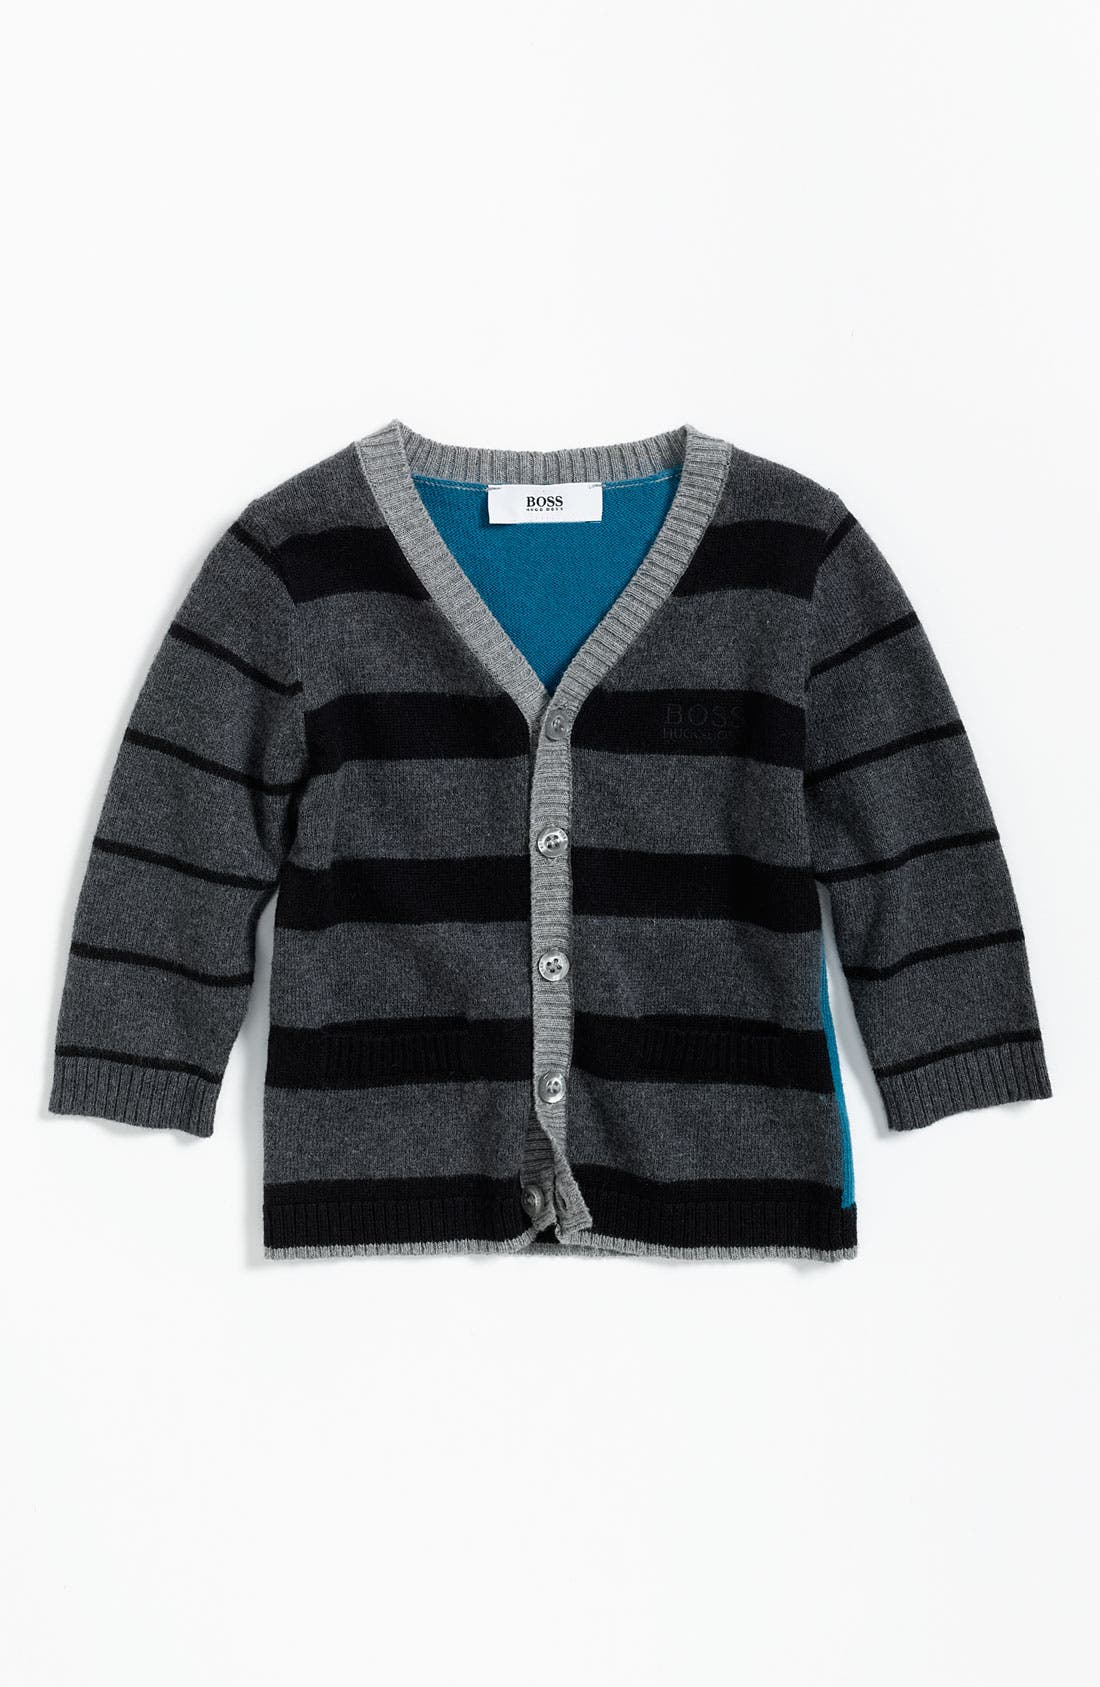 Alternate Image 1 Selected - BOSS Kidswear Stripe Cardigan (Infant)